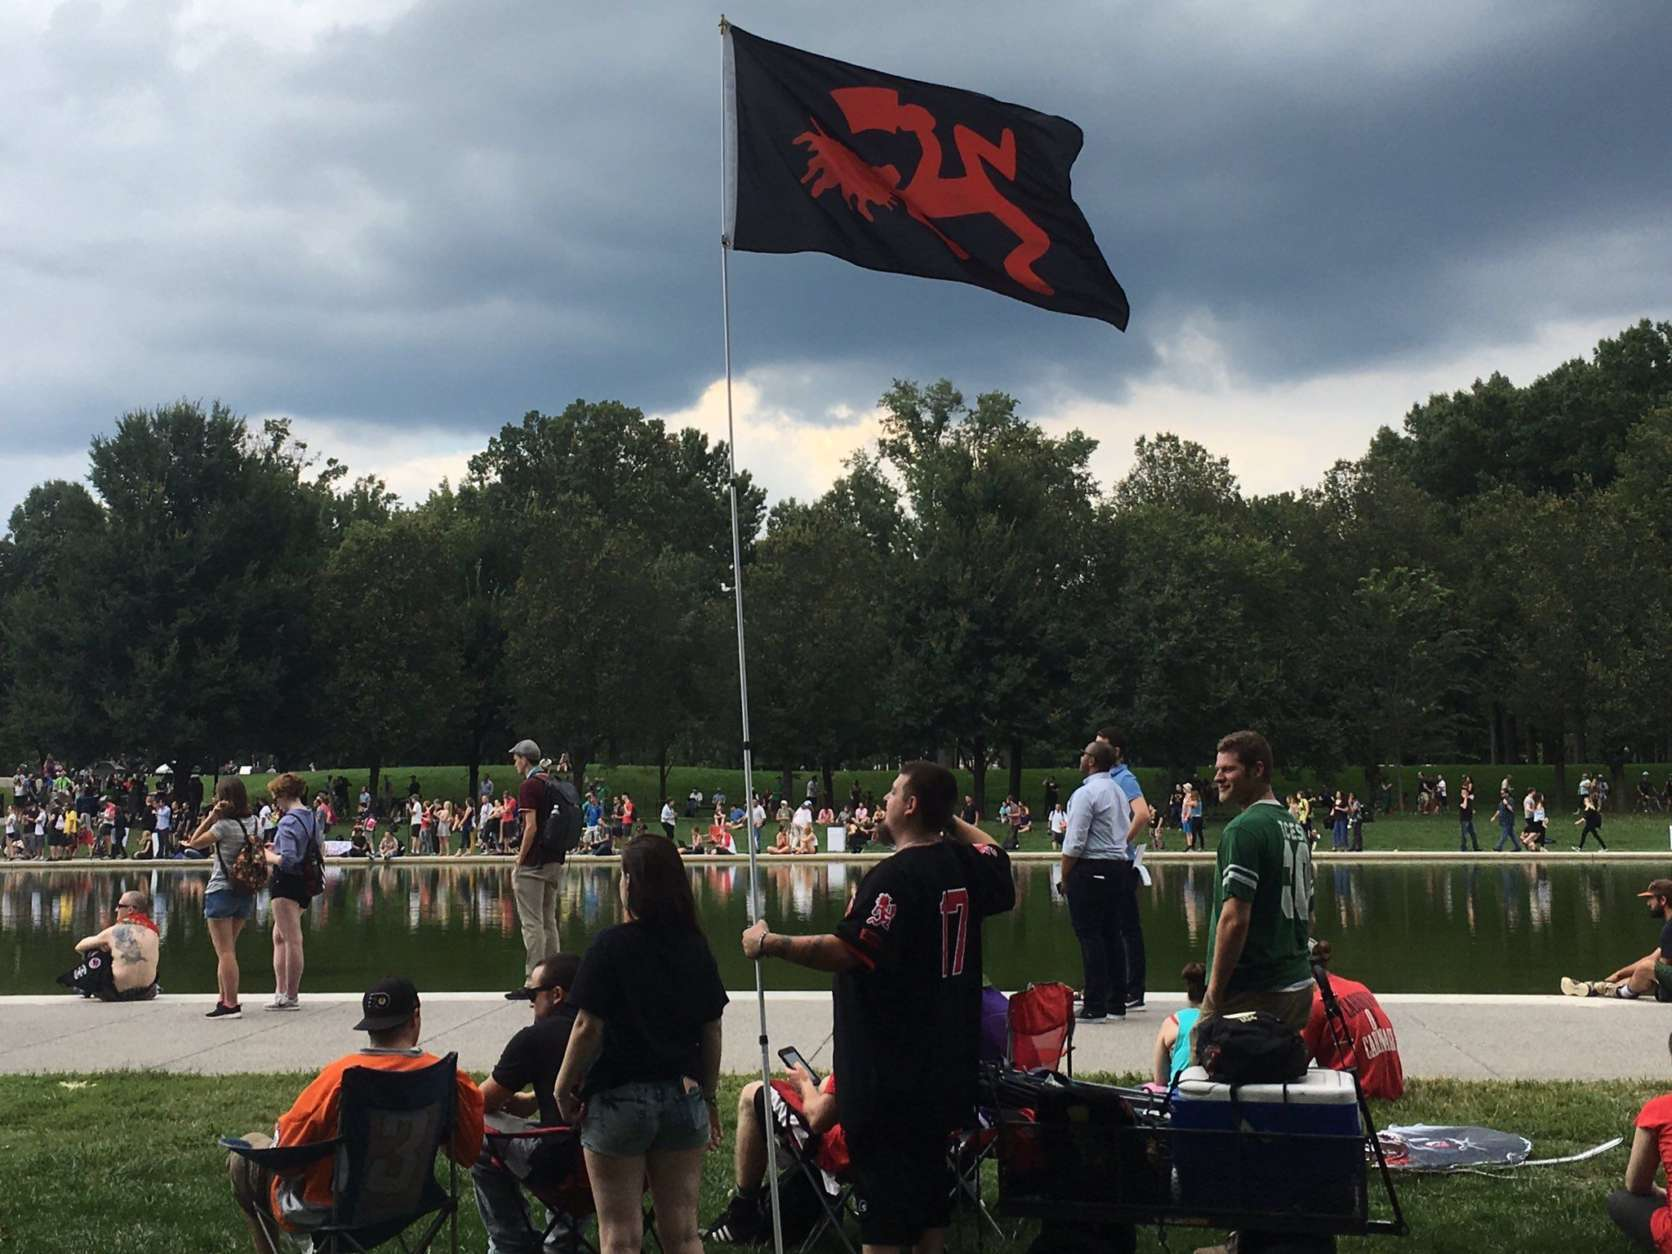 An ICP fan flies a flag with the band's logo at the Juggalo March Sept. 16, 2017. (WTOP/Mike Murillo)